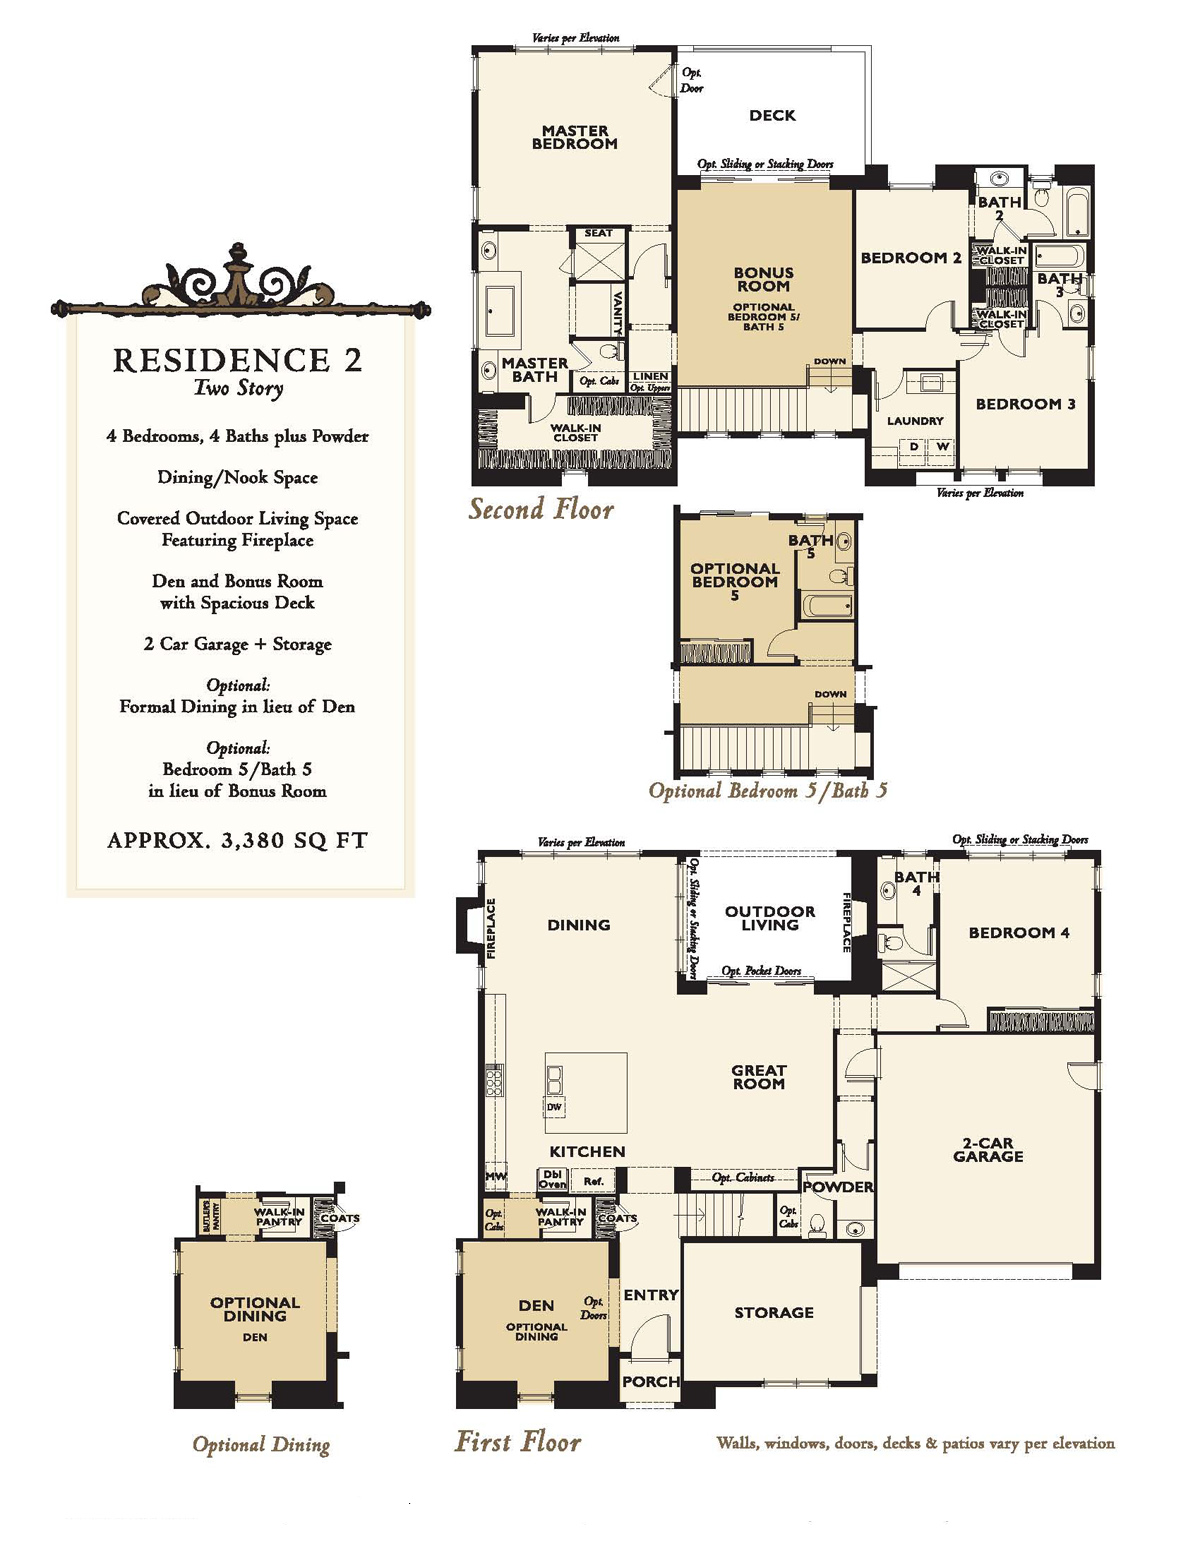 New homes at enclave rancho santa fe floor plans north for Santa fe house plans